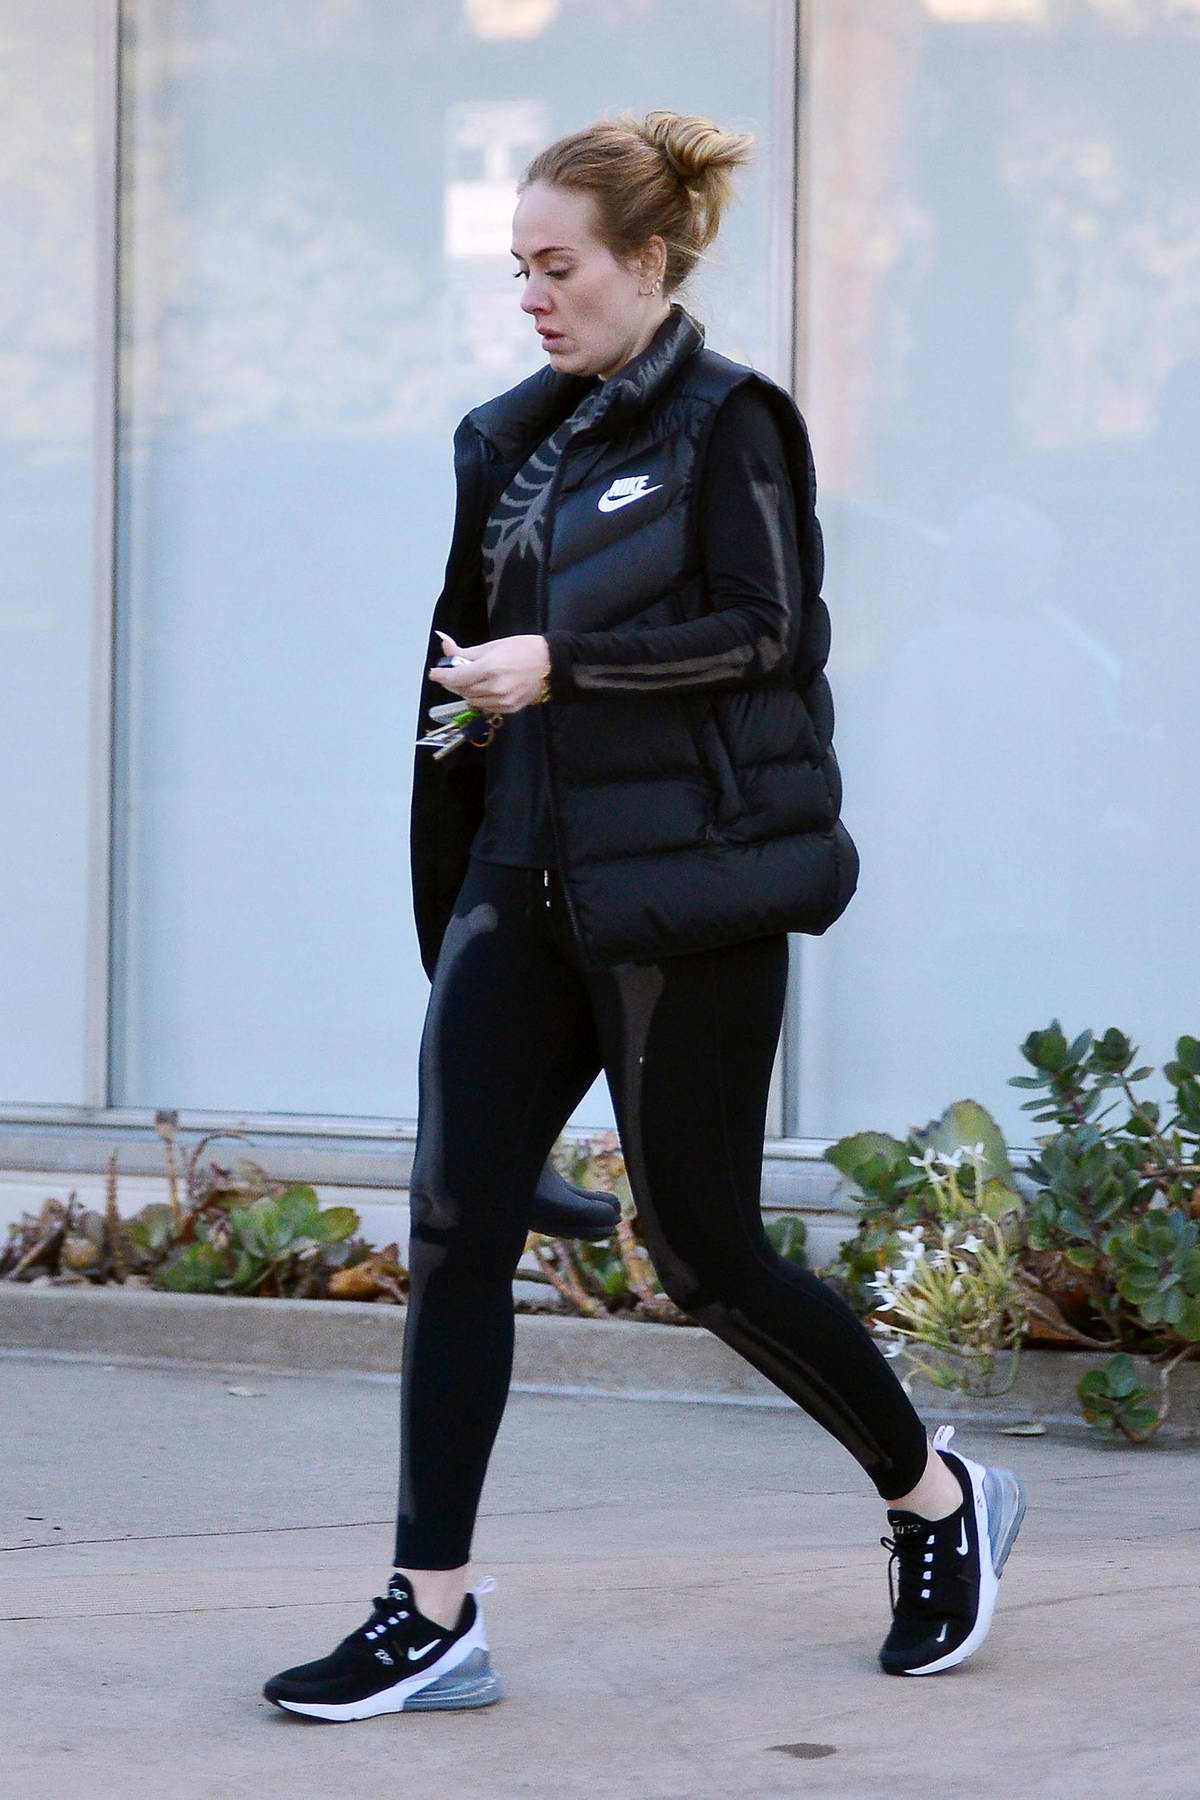 Adele seen wearing a puffy jacket and leggings as she leaves a library in Los Angeles